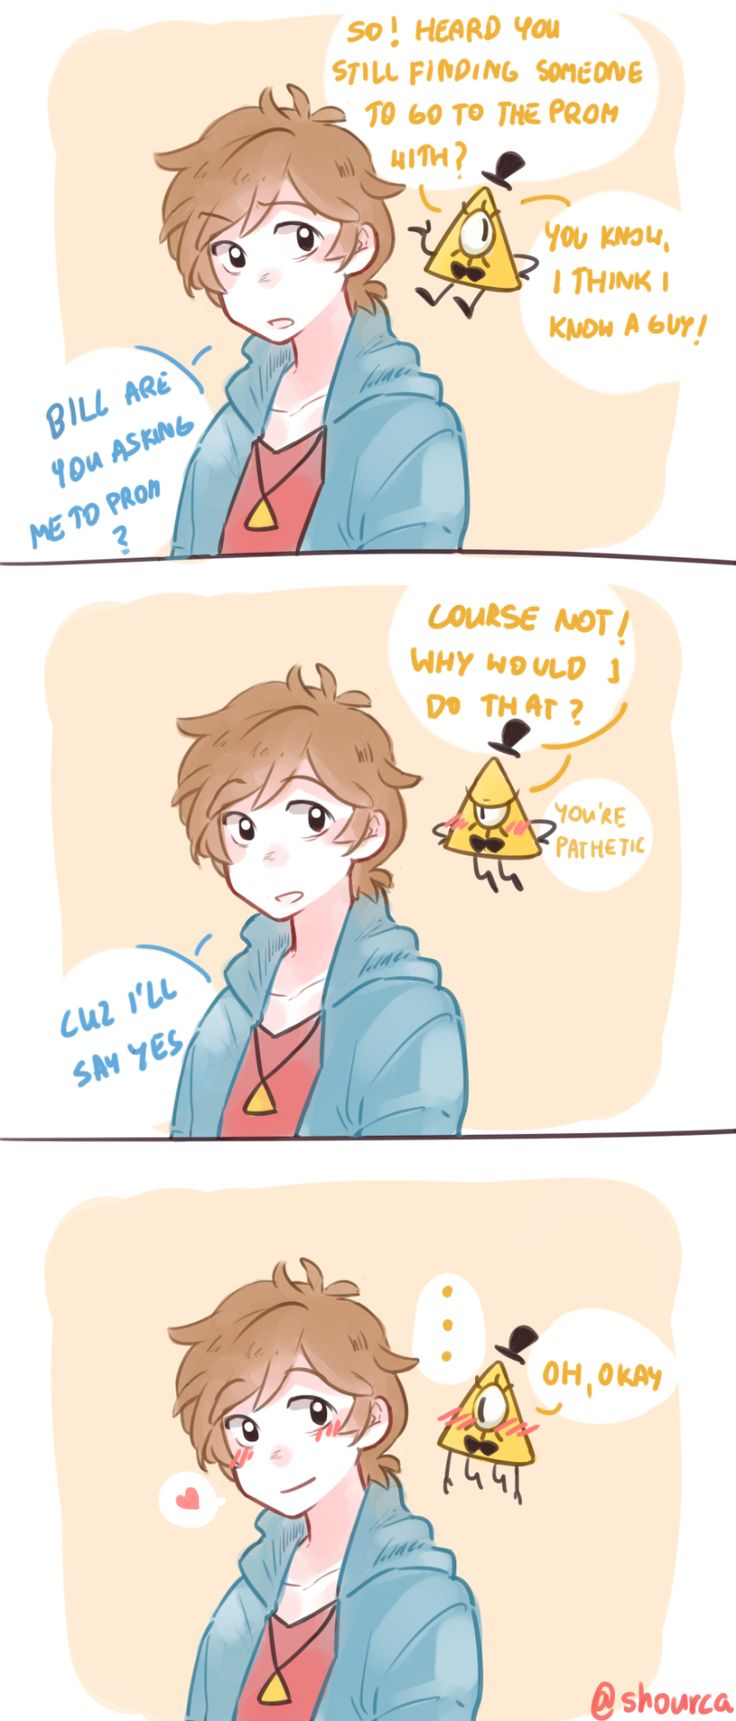 Anonymous said: Will you ever draw a shy Bill asking Dipper to prom? That's like the cutest thing imaginable to me uvu Answer: I JUST HAD TO MAKE A COMIC FOR THIS! OMG DEAR! YOU'RE IDEA IS SUPER CUTE...